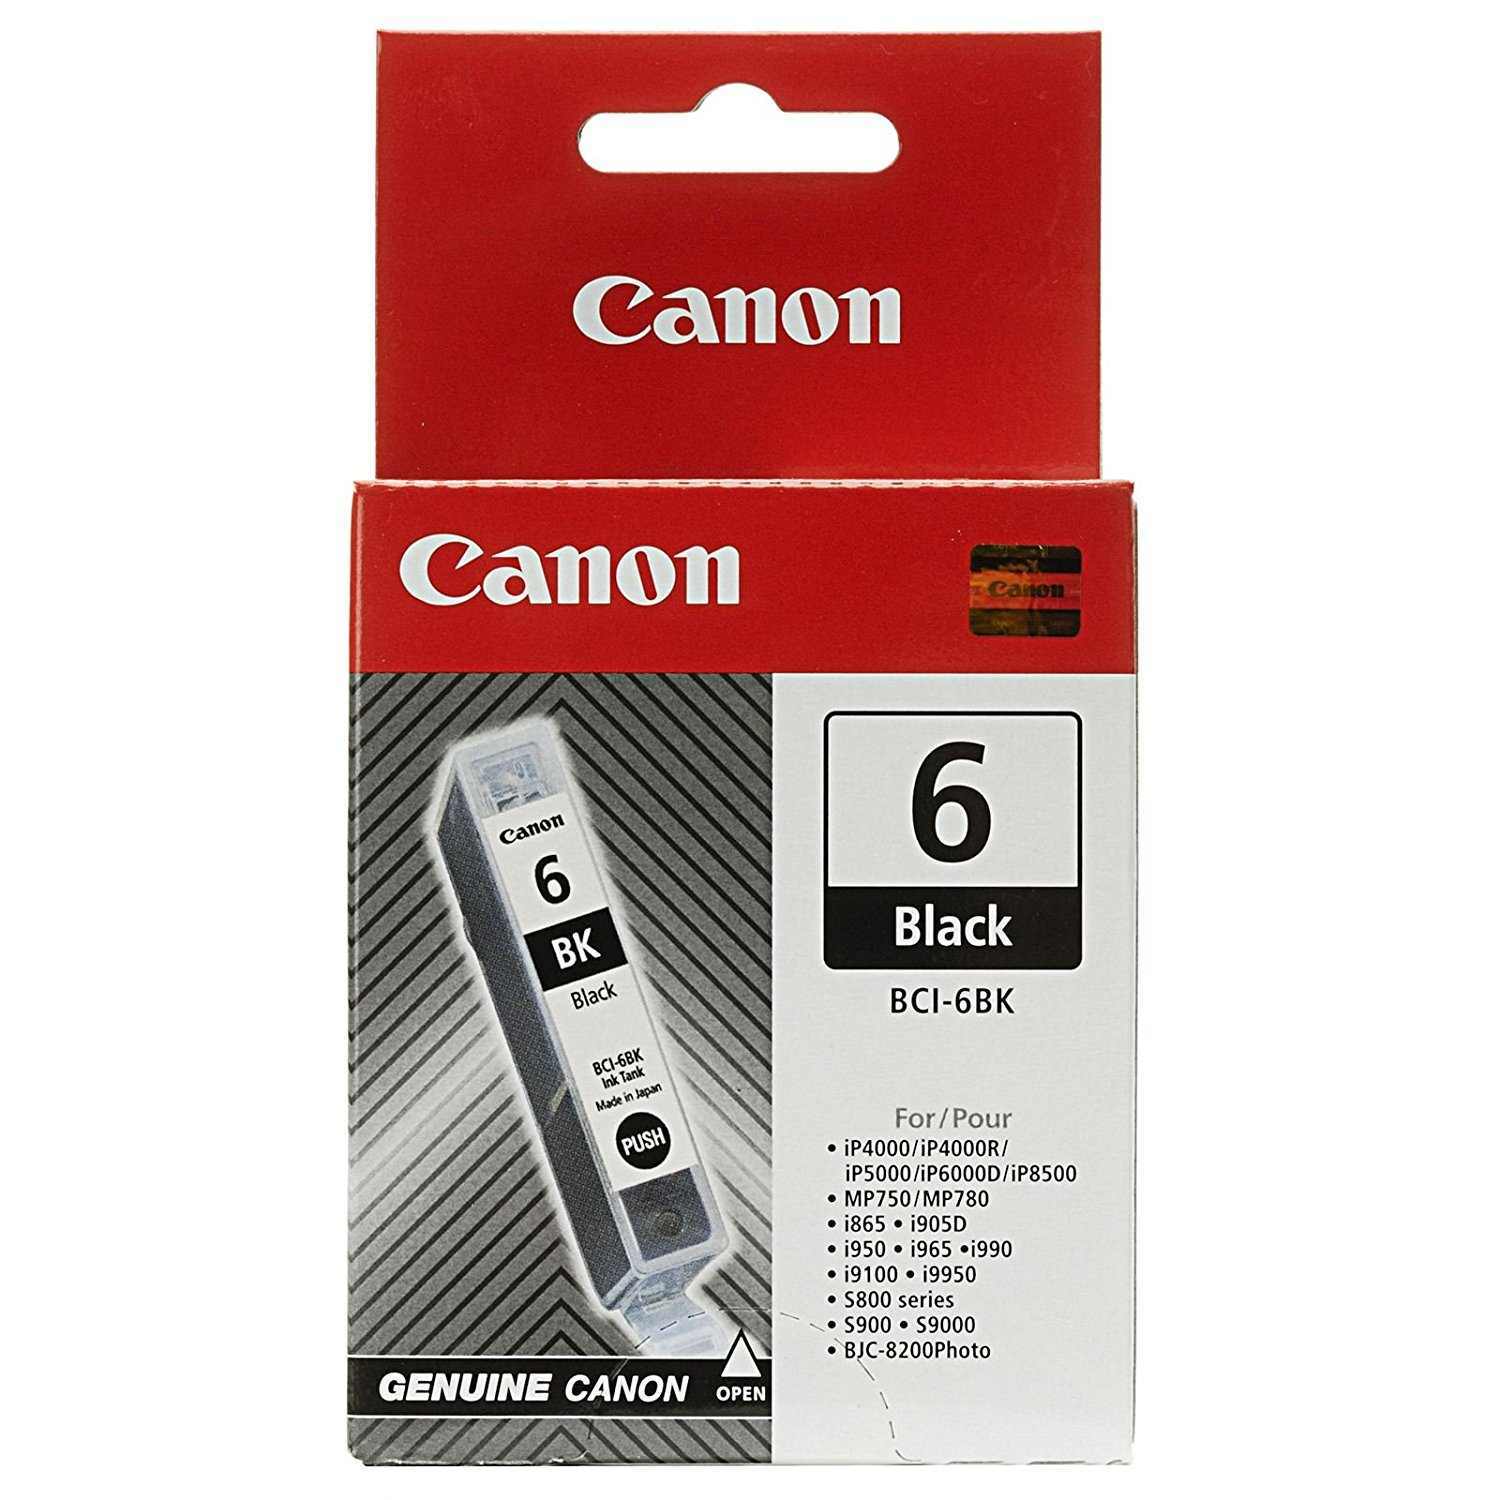 Canon BCI-6 (4705A003) Black Ink Cartridge for iP4000/iP4000R/iP5000/iP6000D/iP8500, MP750/MP780, i865, i905D, i950, i965, i990, i9100, i9950, S800 series, S900, S9000, BJC-8200Photo